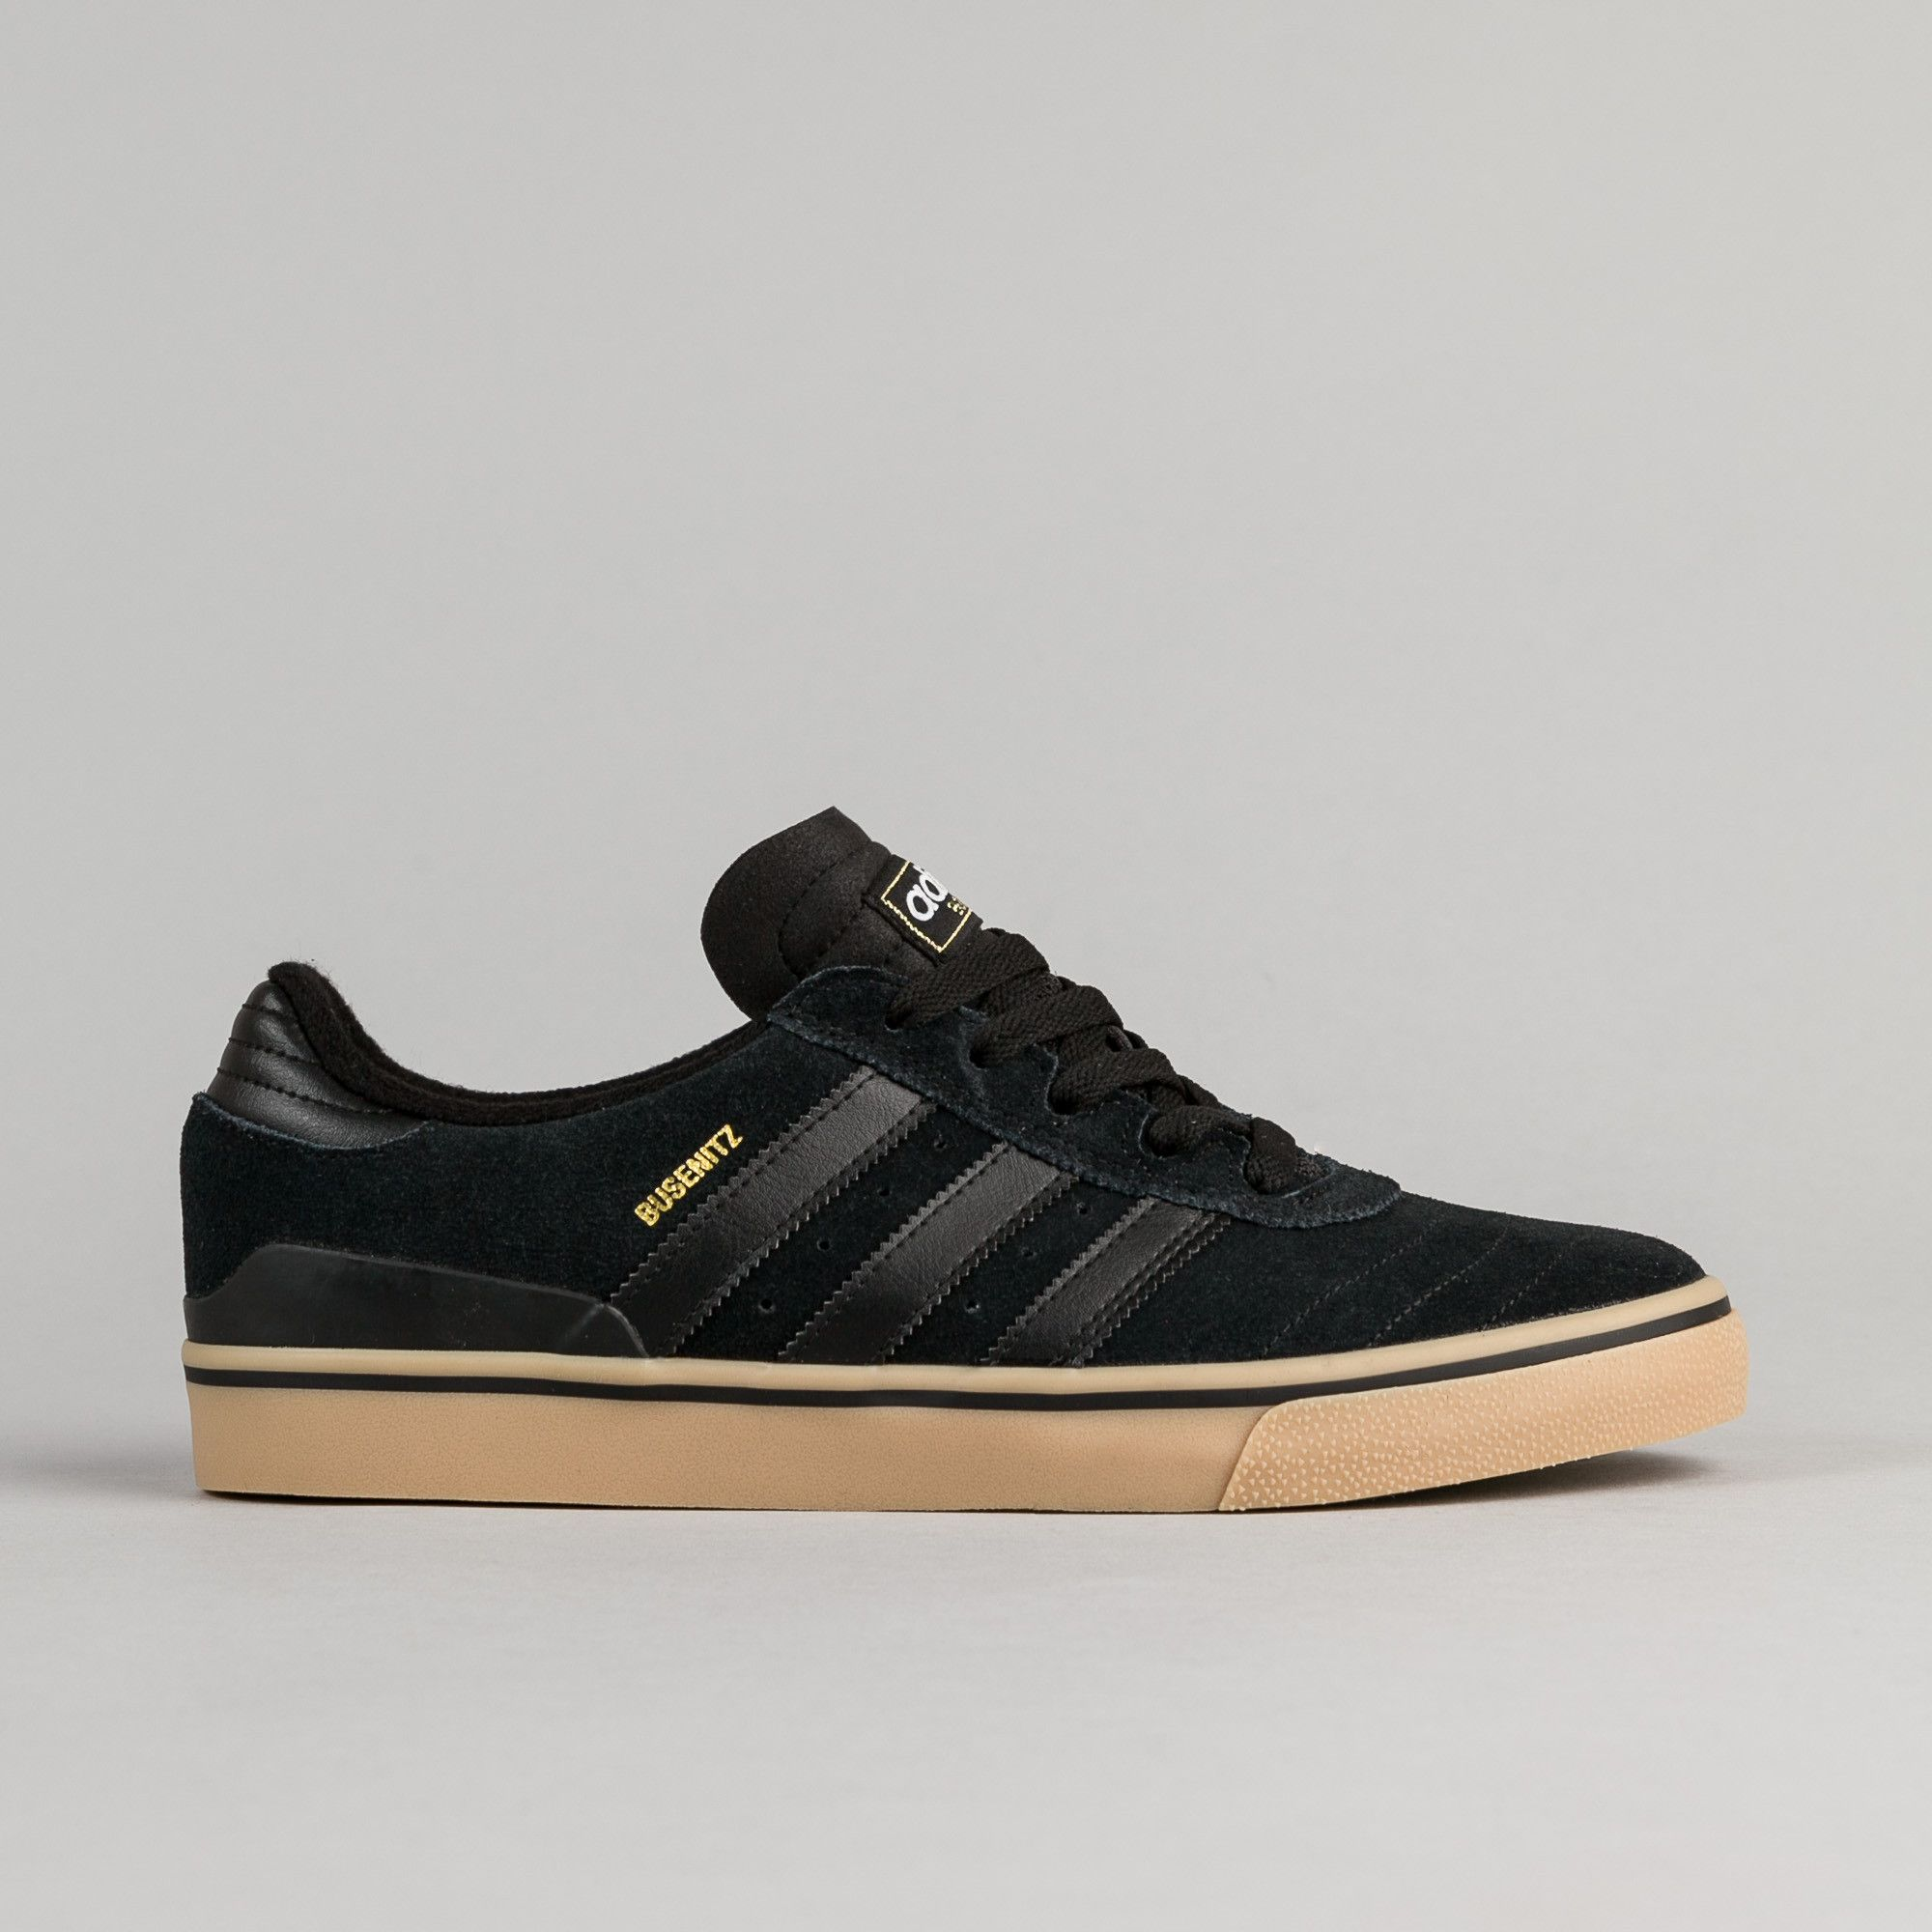 d12b713aace Free Shipping   Free Returns   Shop the Adidas Busenitz Vulc ADV Shoes in  Core Black and Core Black   Gum at Flatspot